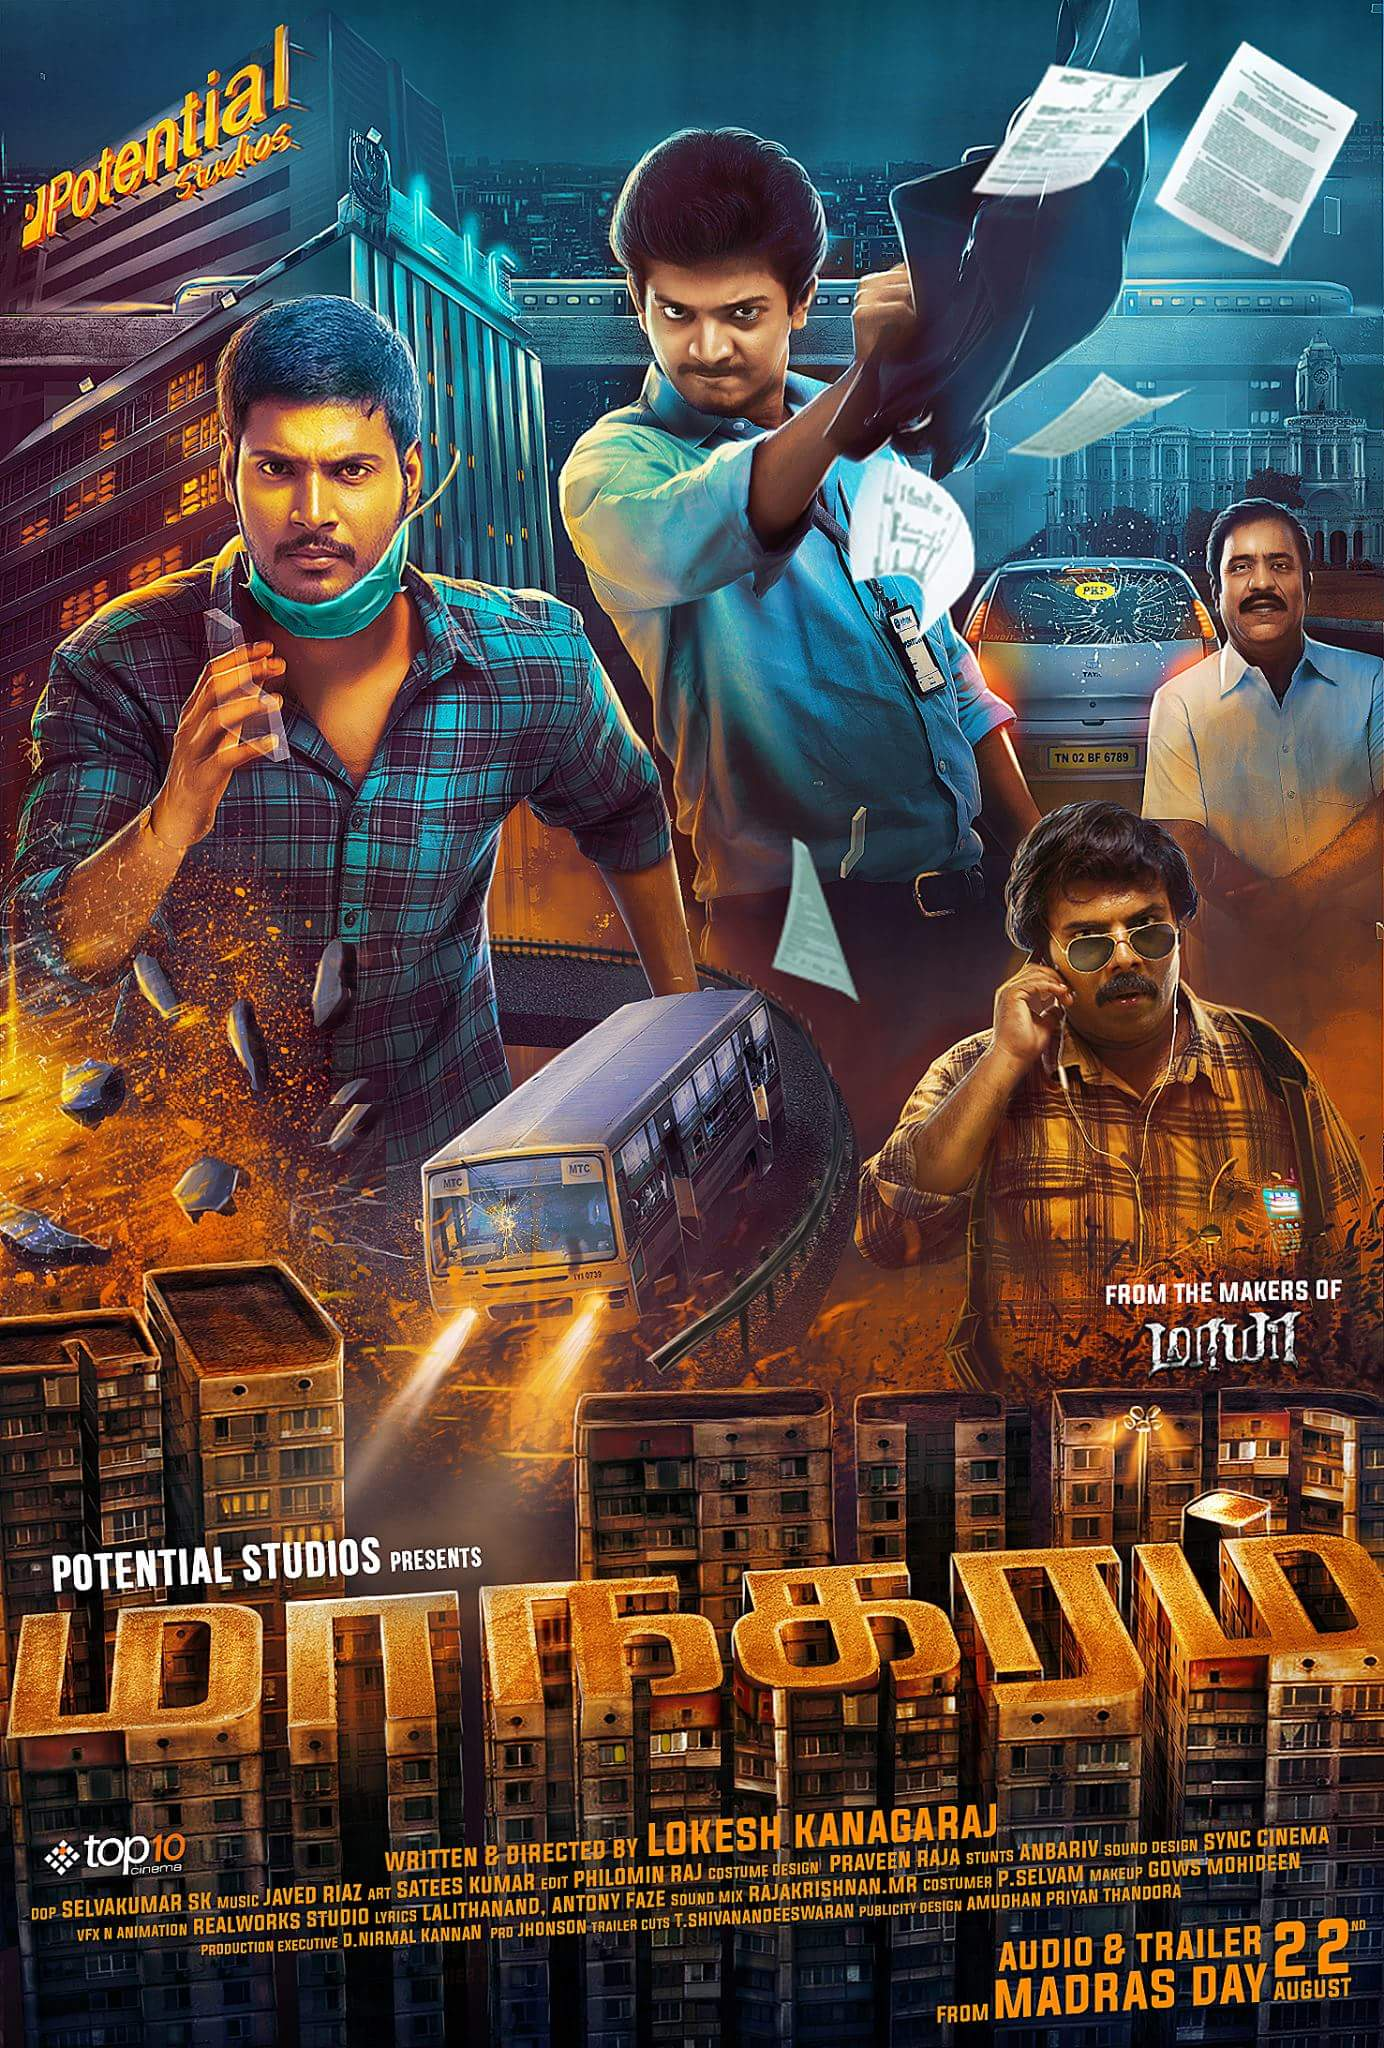 Dadagiri 2 (Maanagaram) (2019) 480p HDRip x264 Hindi Dubbed [350MB]